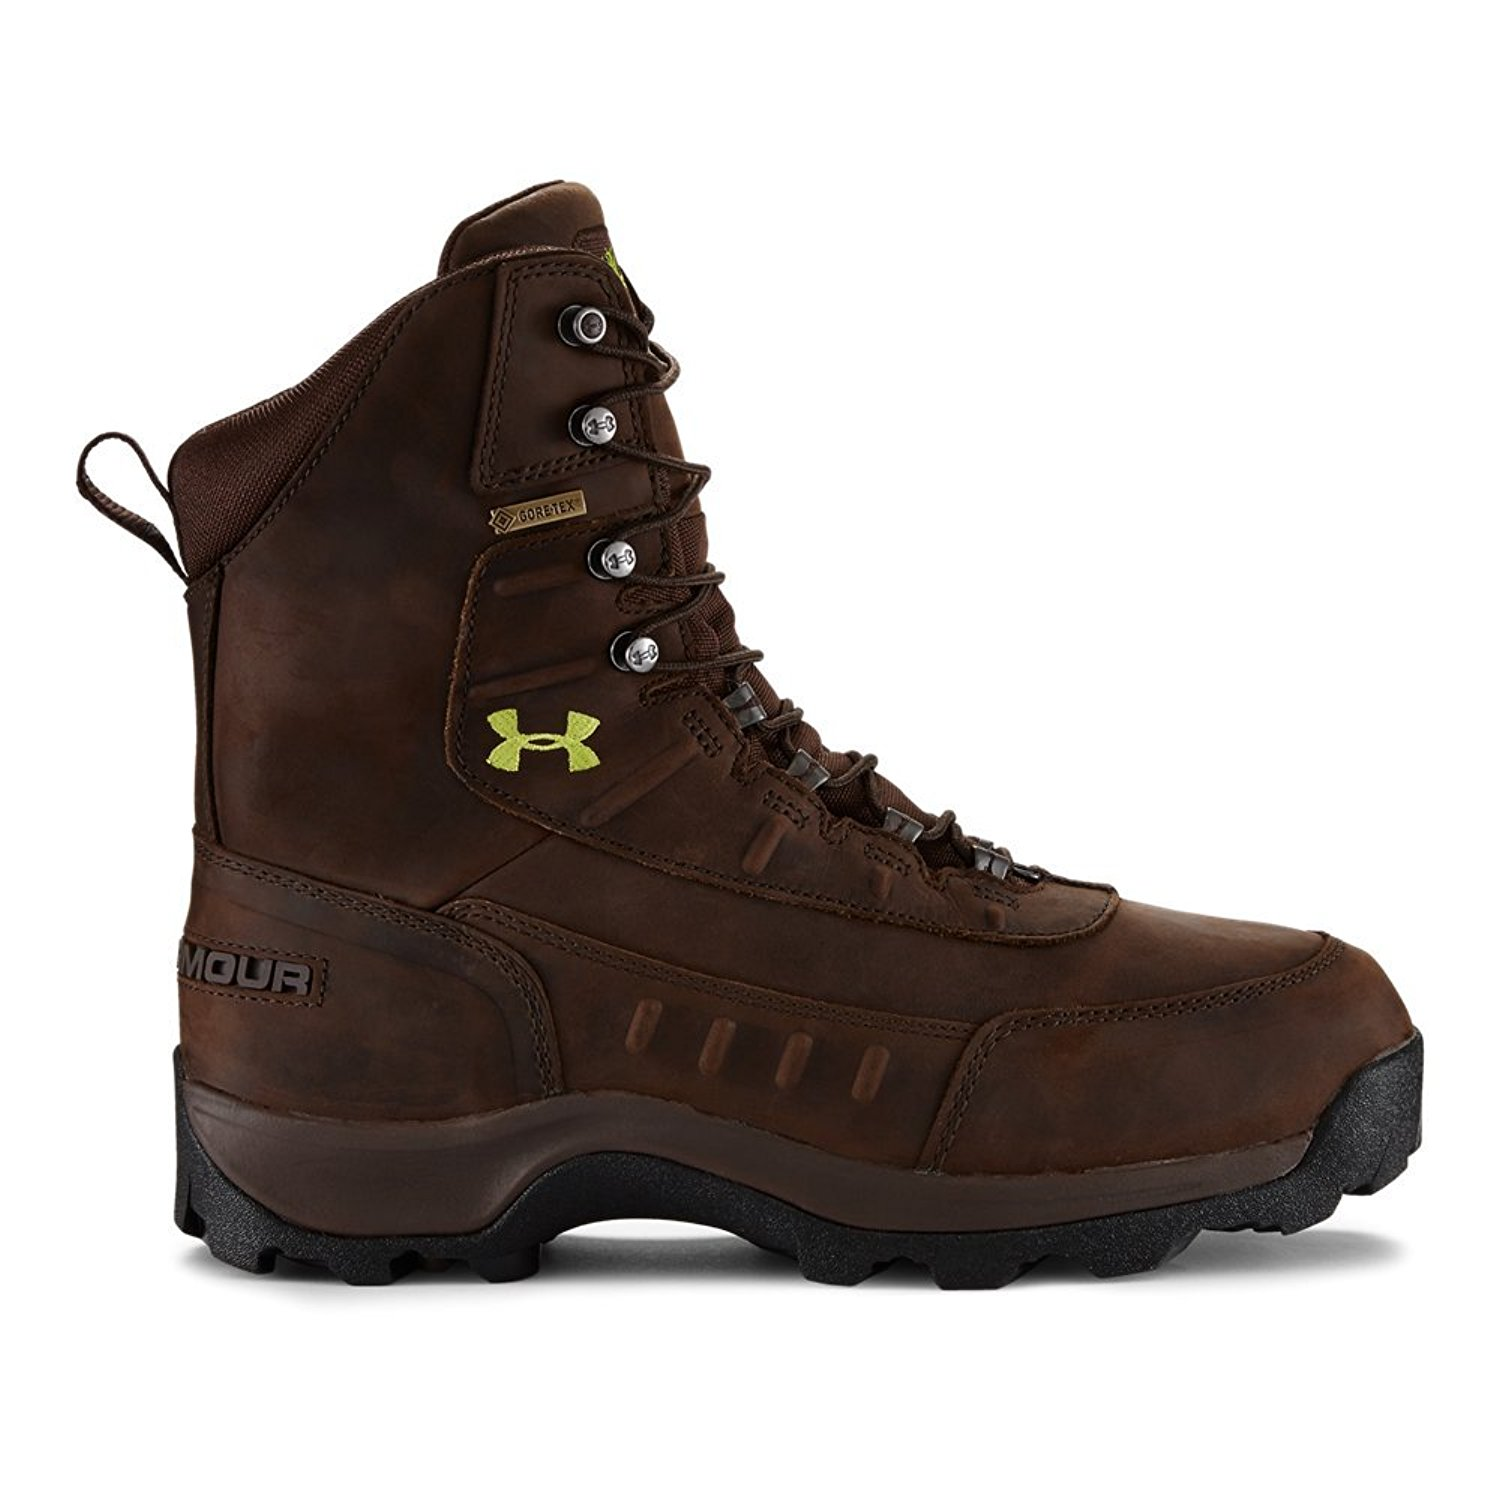 2be437fff55 Cheap Under Armour Hunting Boots, find Under Armour Hunting Boots ...